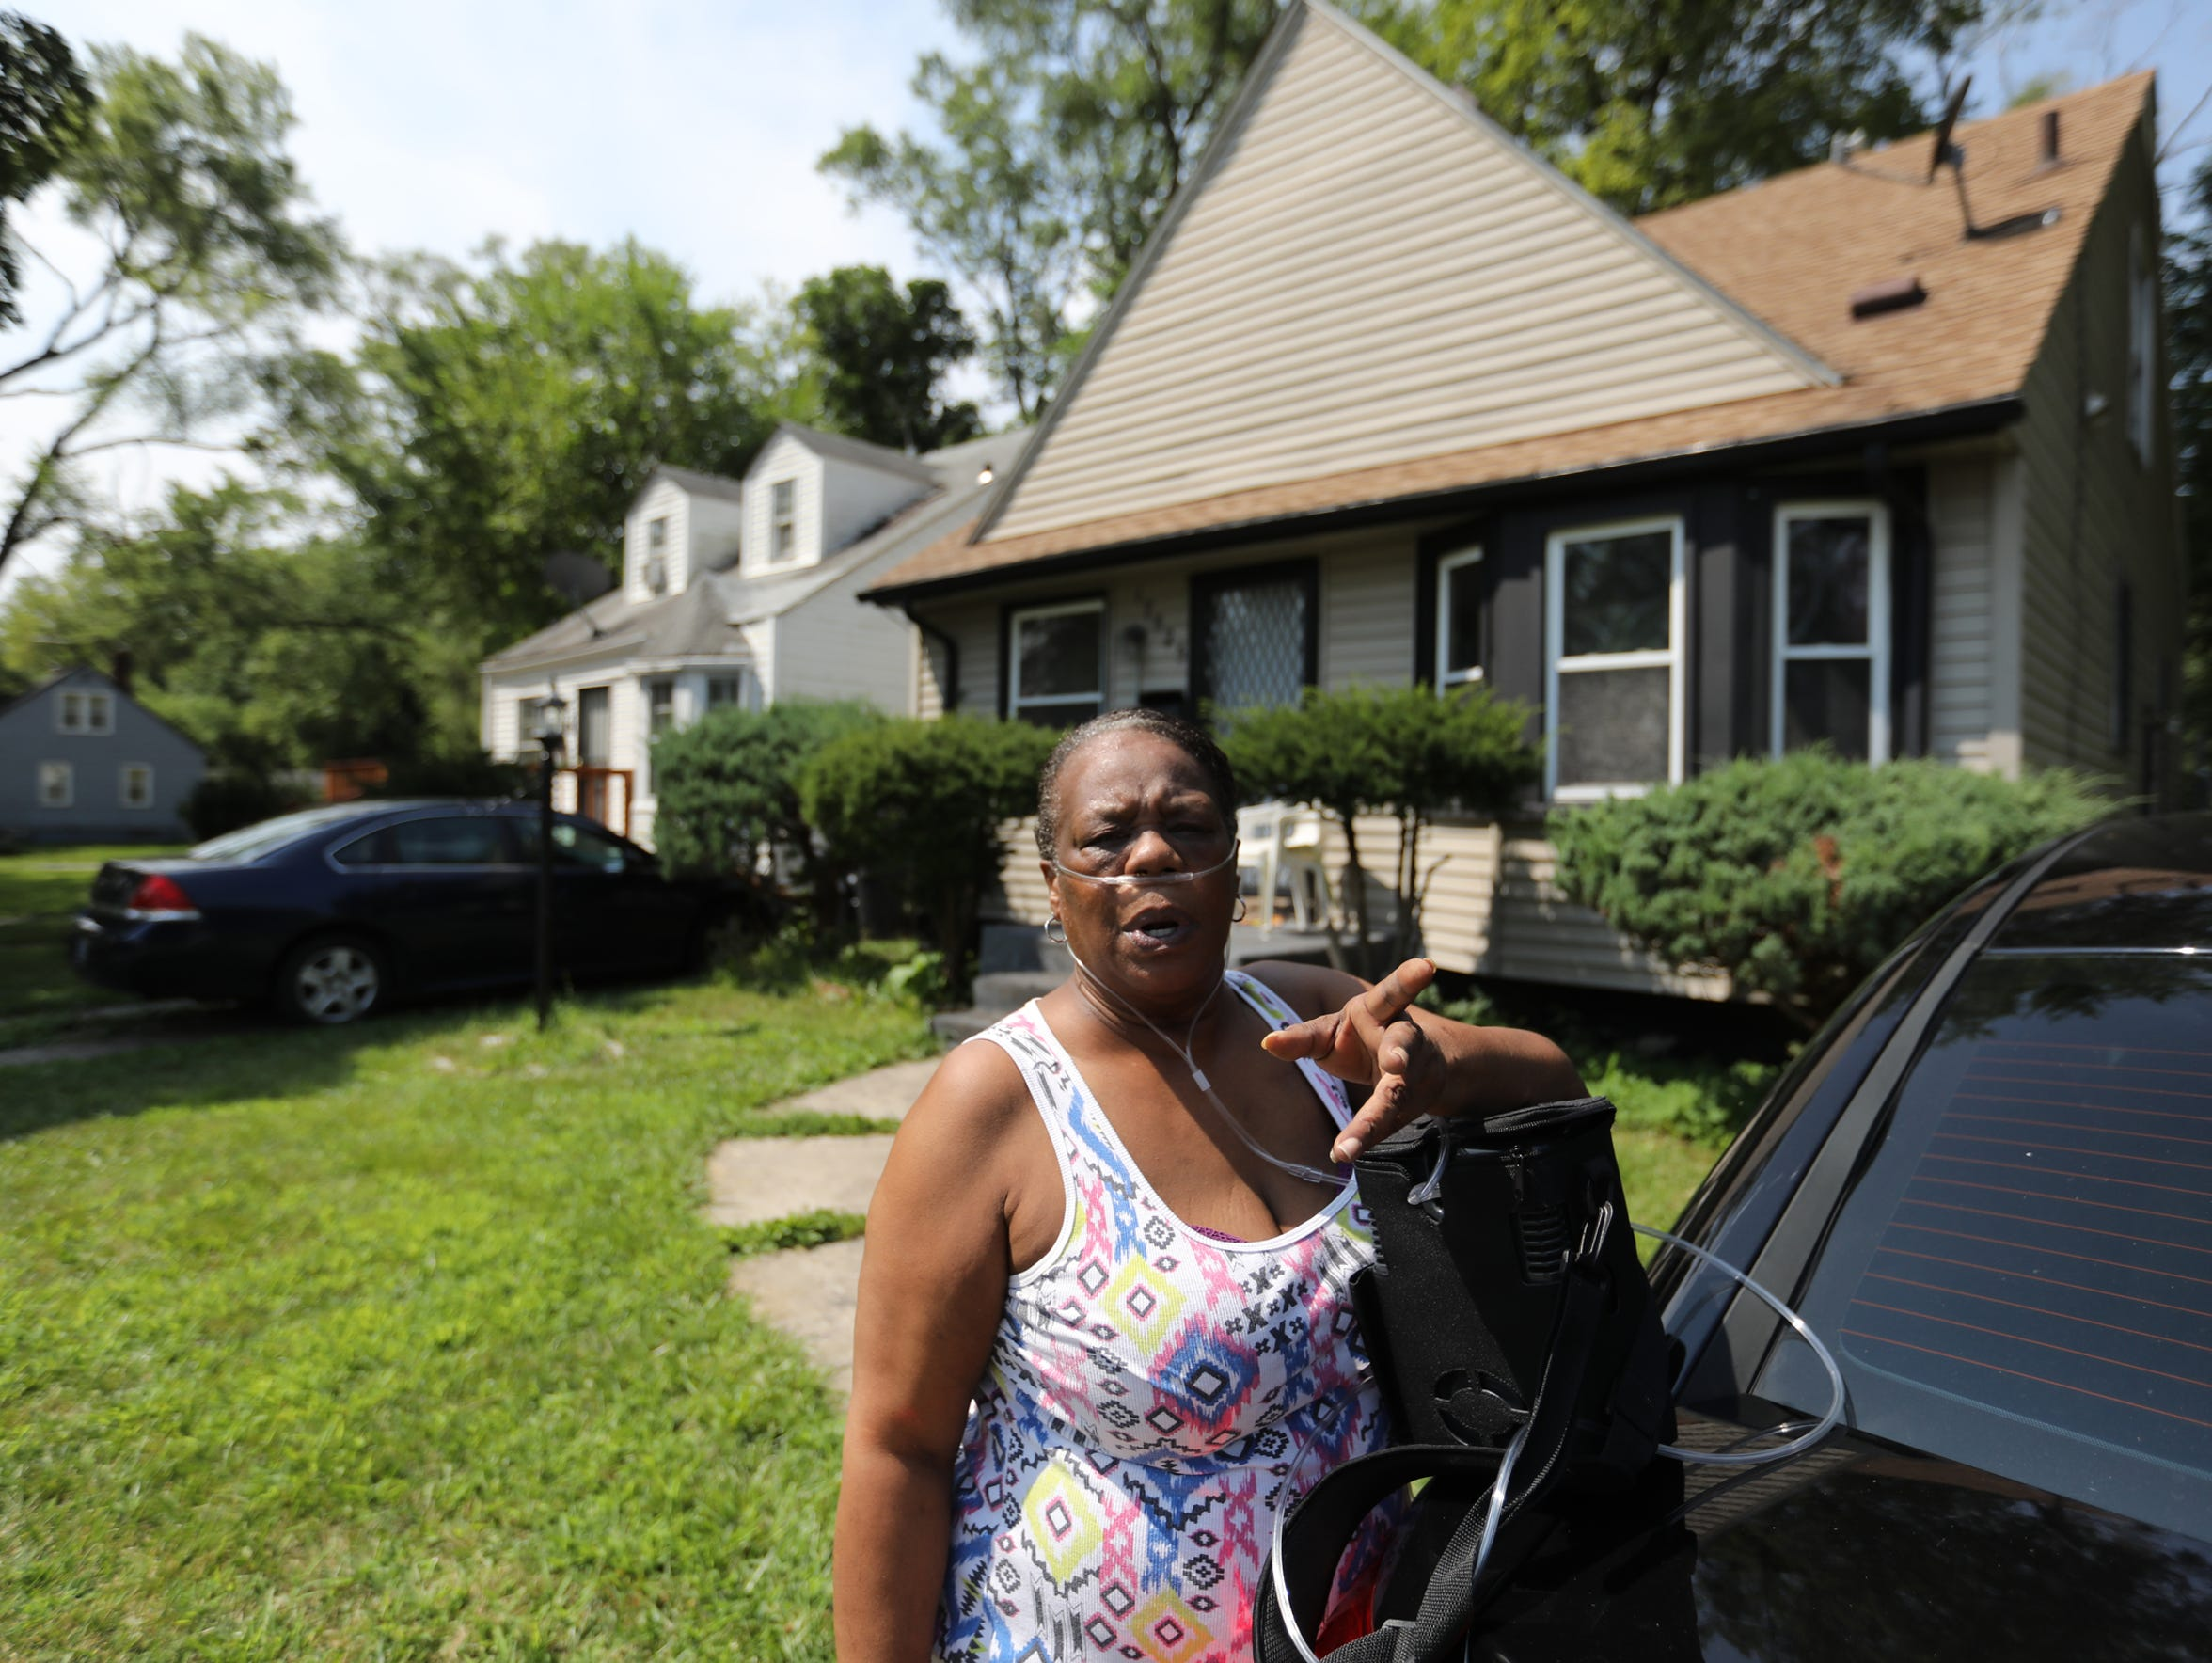 Felicia Anderson, 60, in front of her home on Heyden